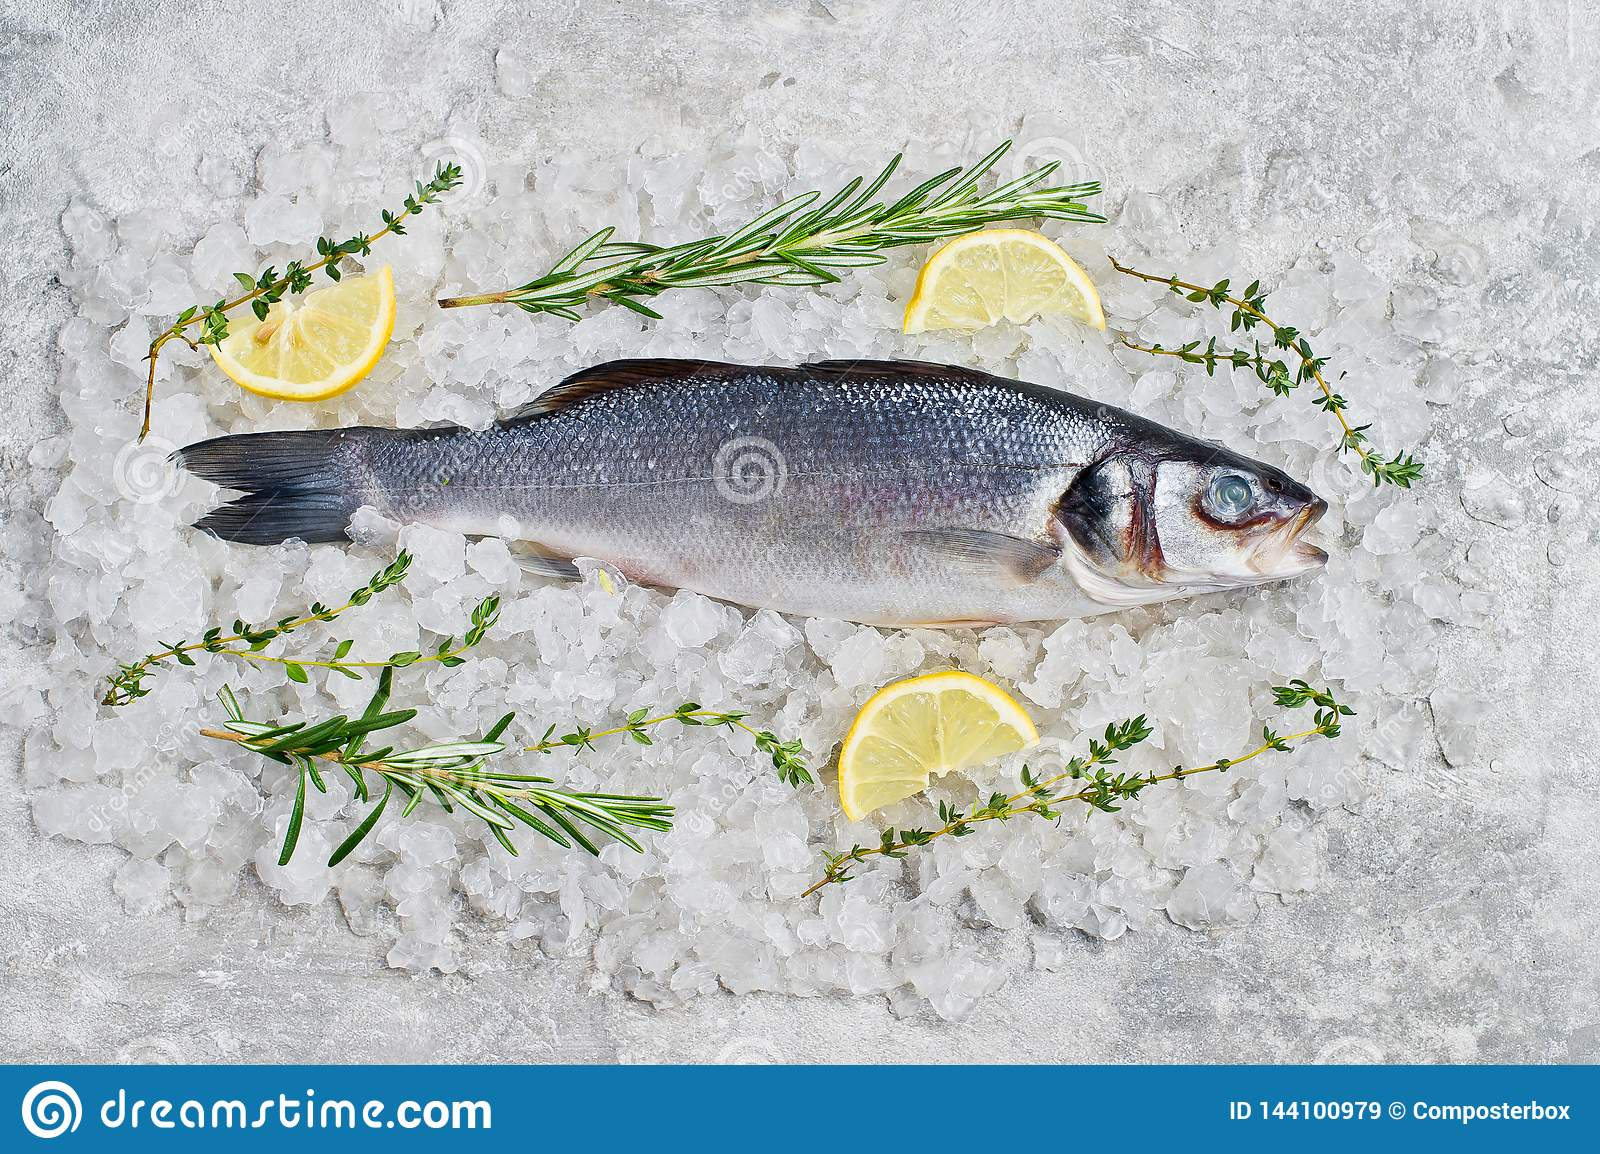 Raw sea bass on ice with rosemary, thyme and lemon. Gray background, top view.